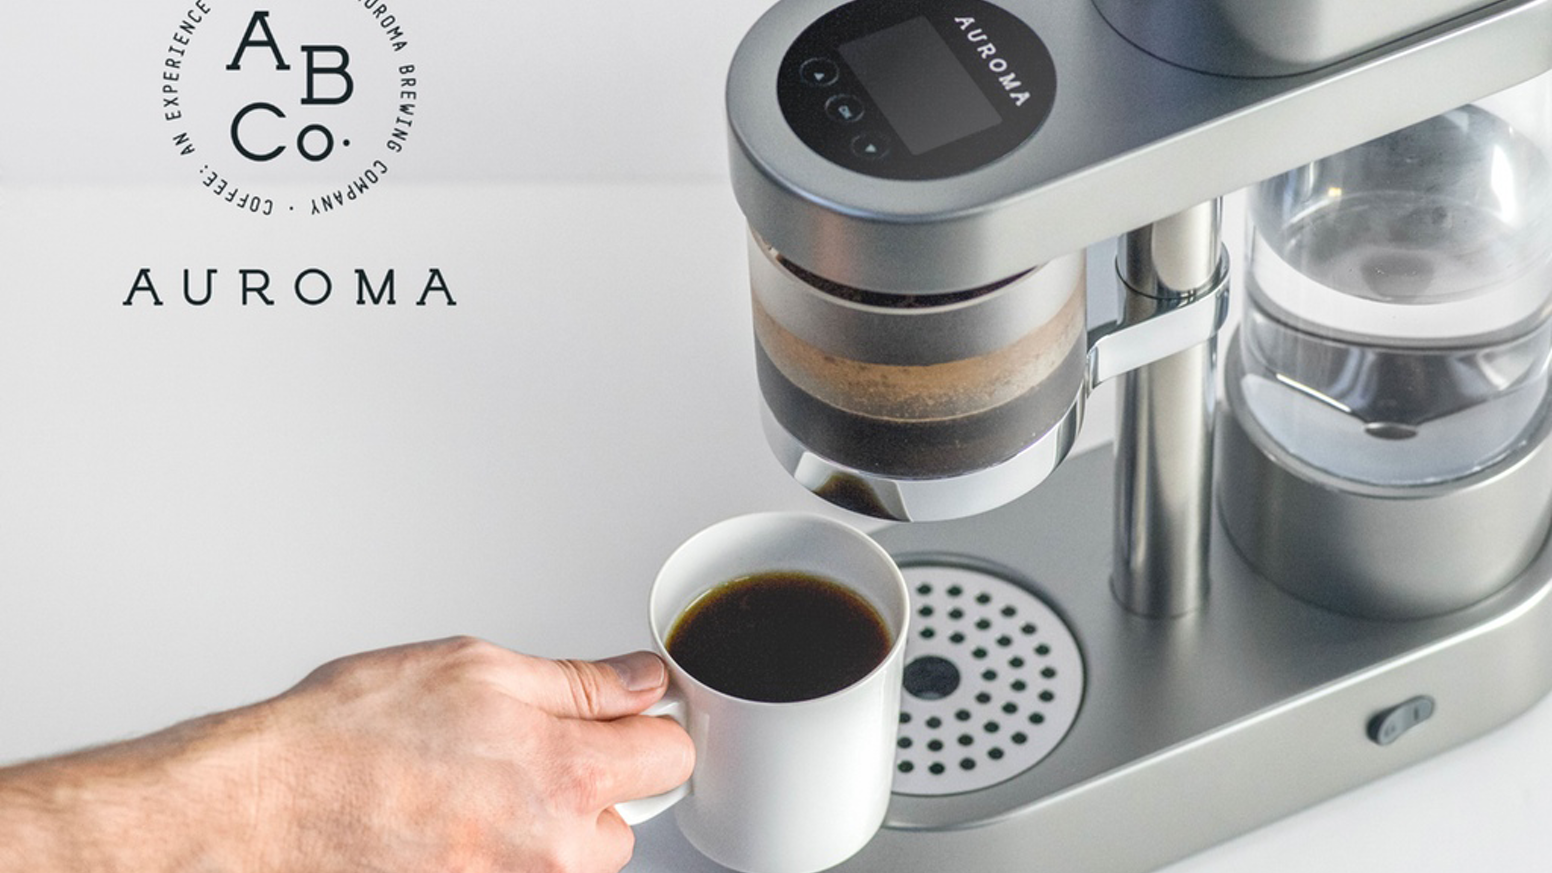 Auroma Never Make Bad Coffee Again By Auroma Brewing Company